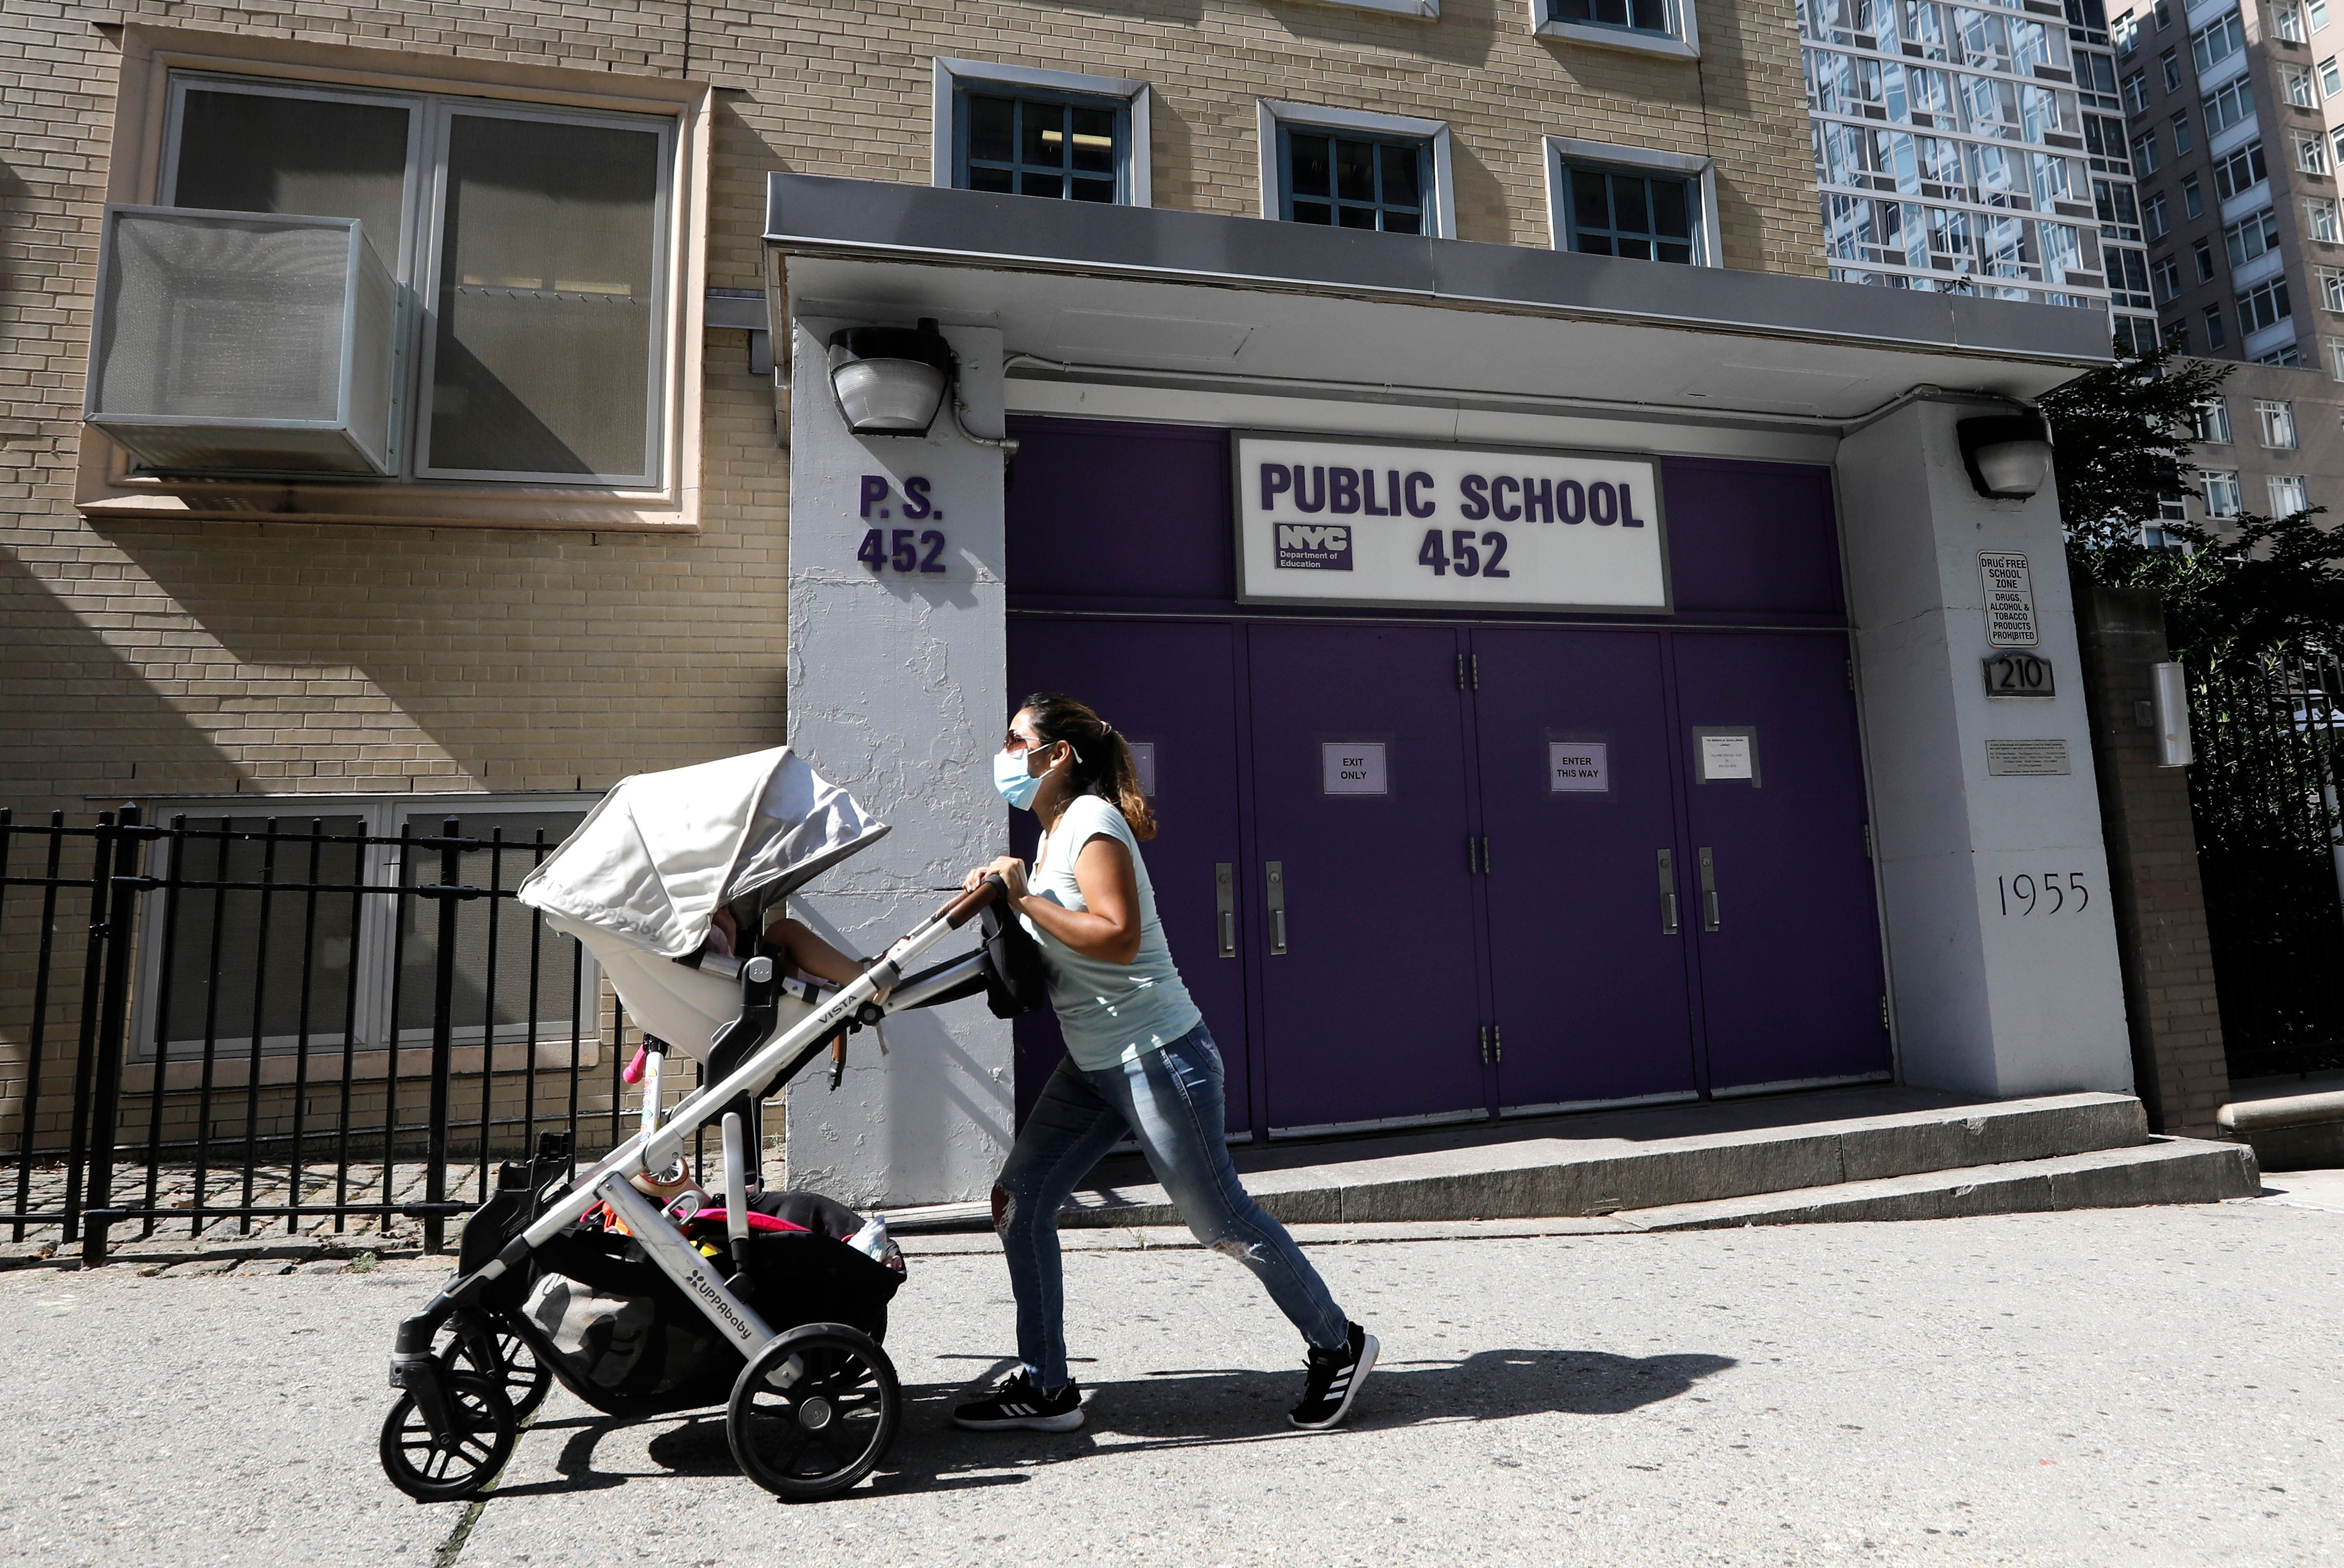 A woman pushes a baby stroller past Public School 452 in New York.